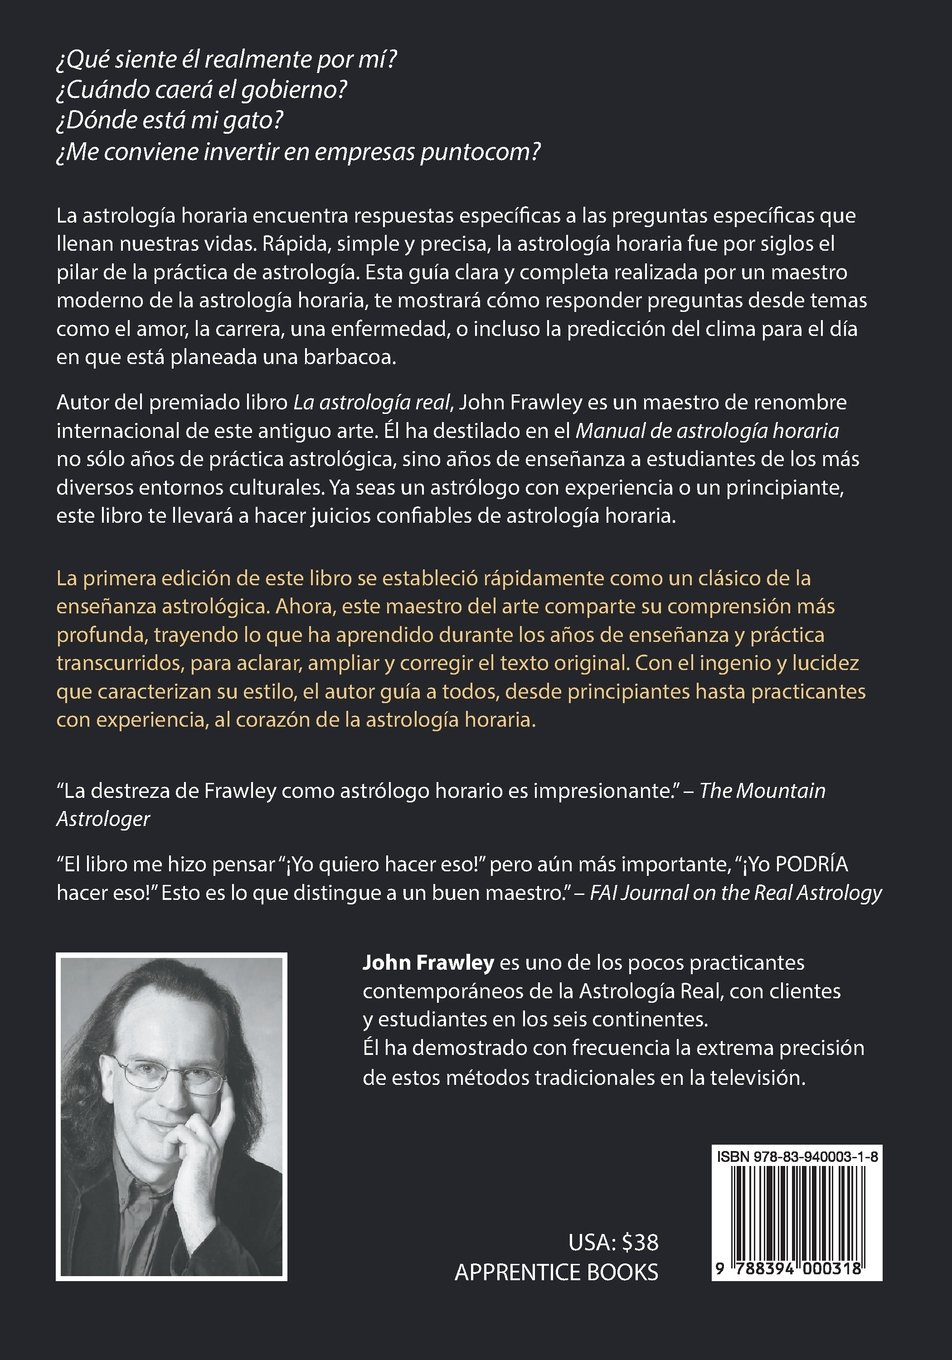 Manual de Astrología Horaria - Versión extendida (Spanish Edition): John Frawley, Leah Cuperman, Javier Güelfi: 9788394000318: Amazon.com: Books